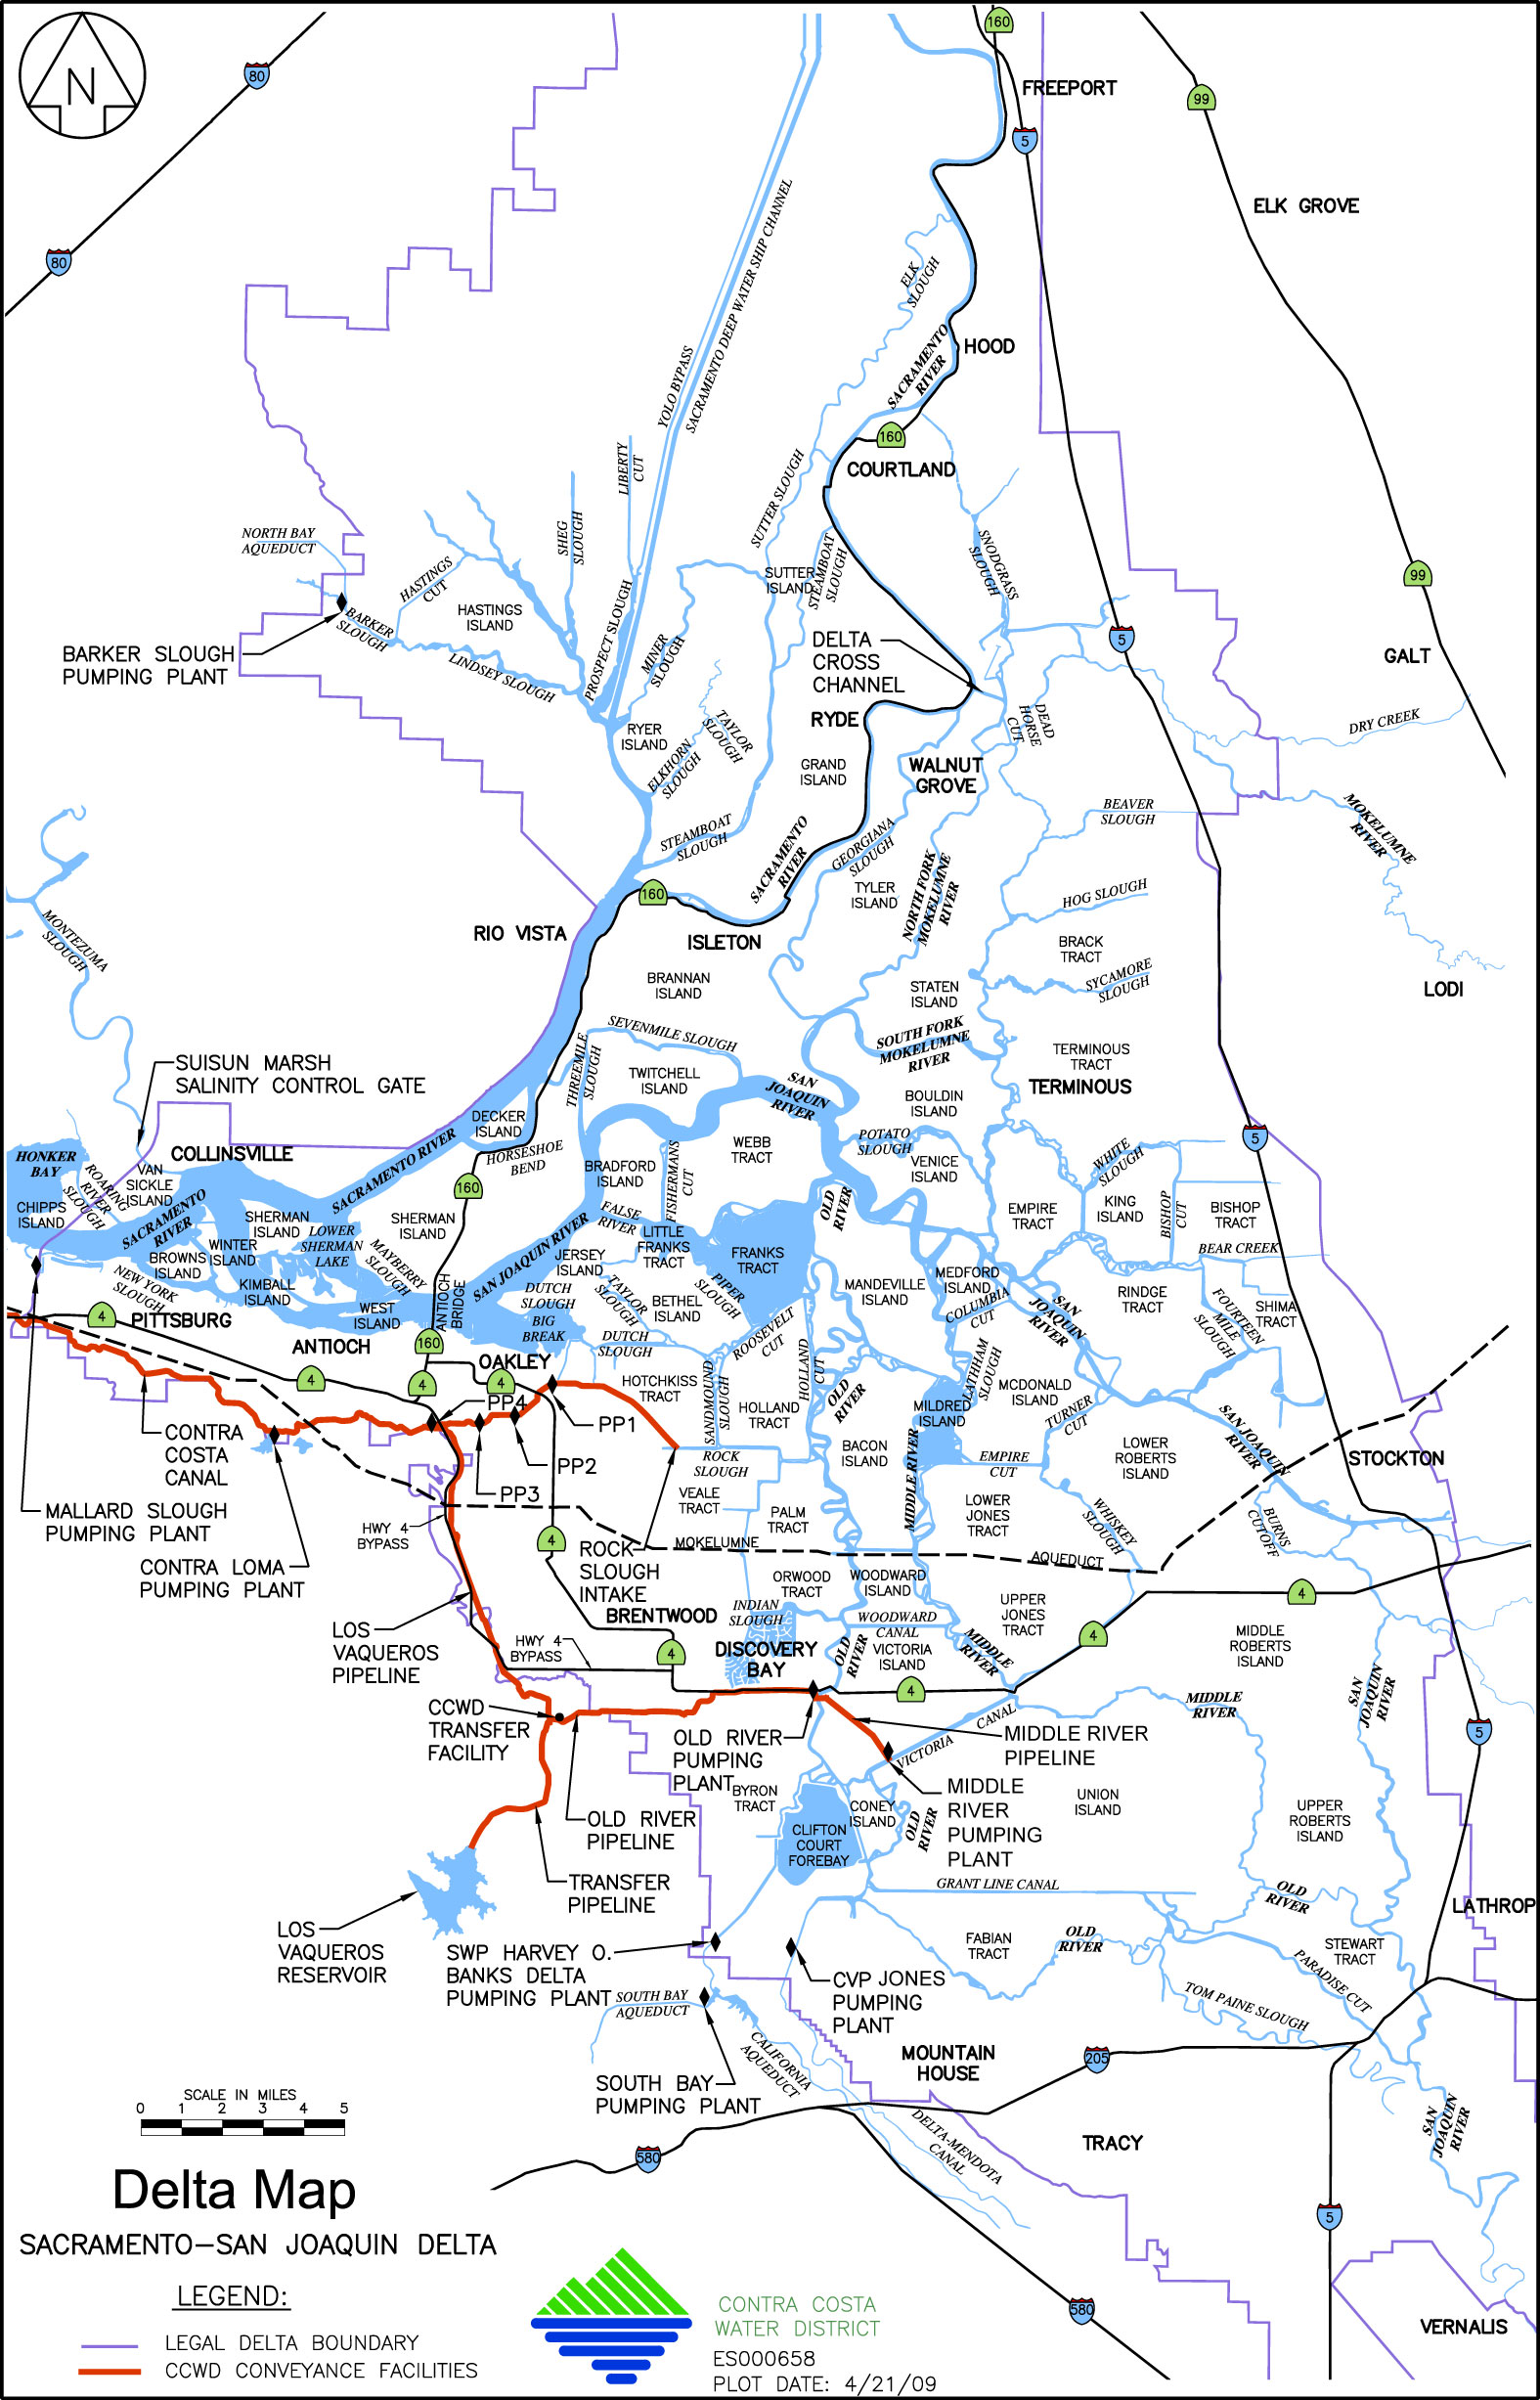 Map of the Delta